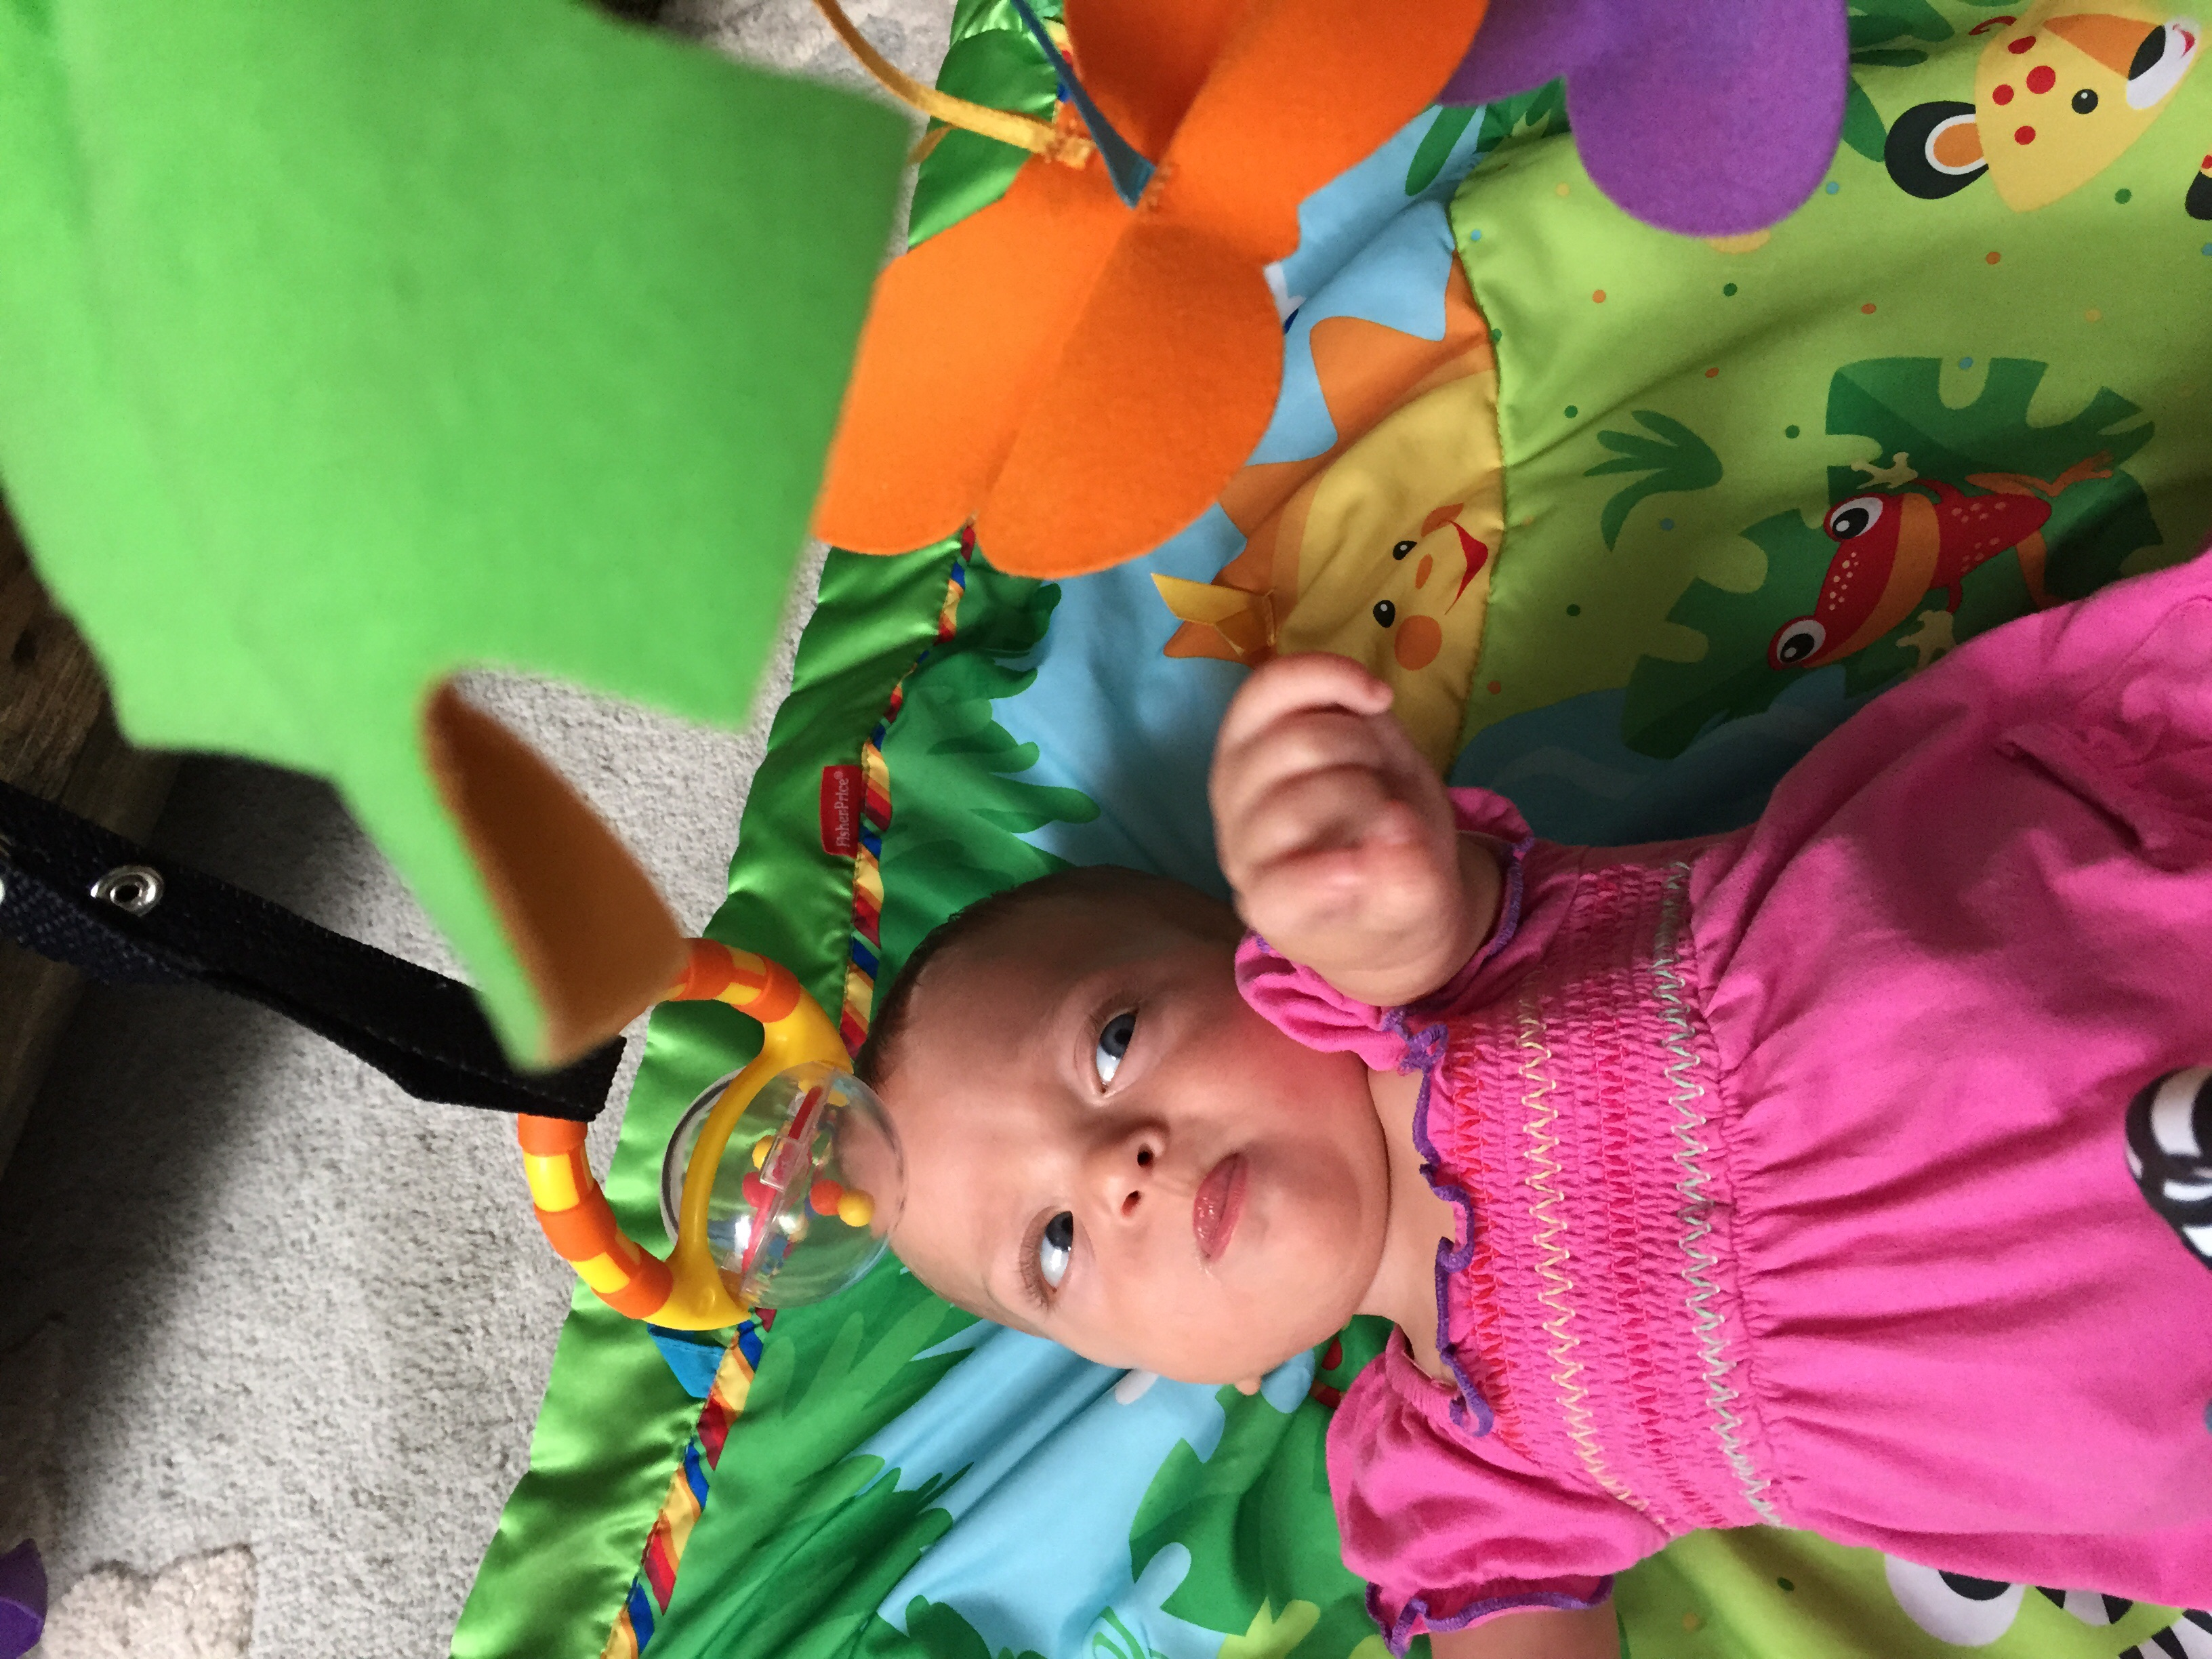 Reaching for the butterflies, sticking her tongue out in deep concentration, just like her Papa.